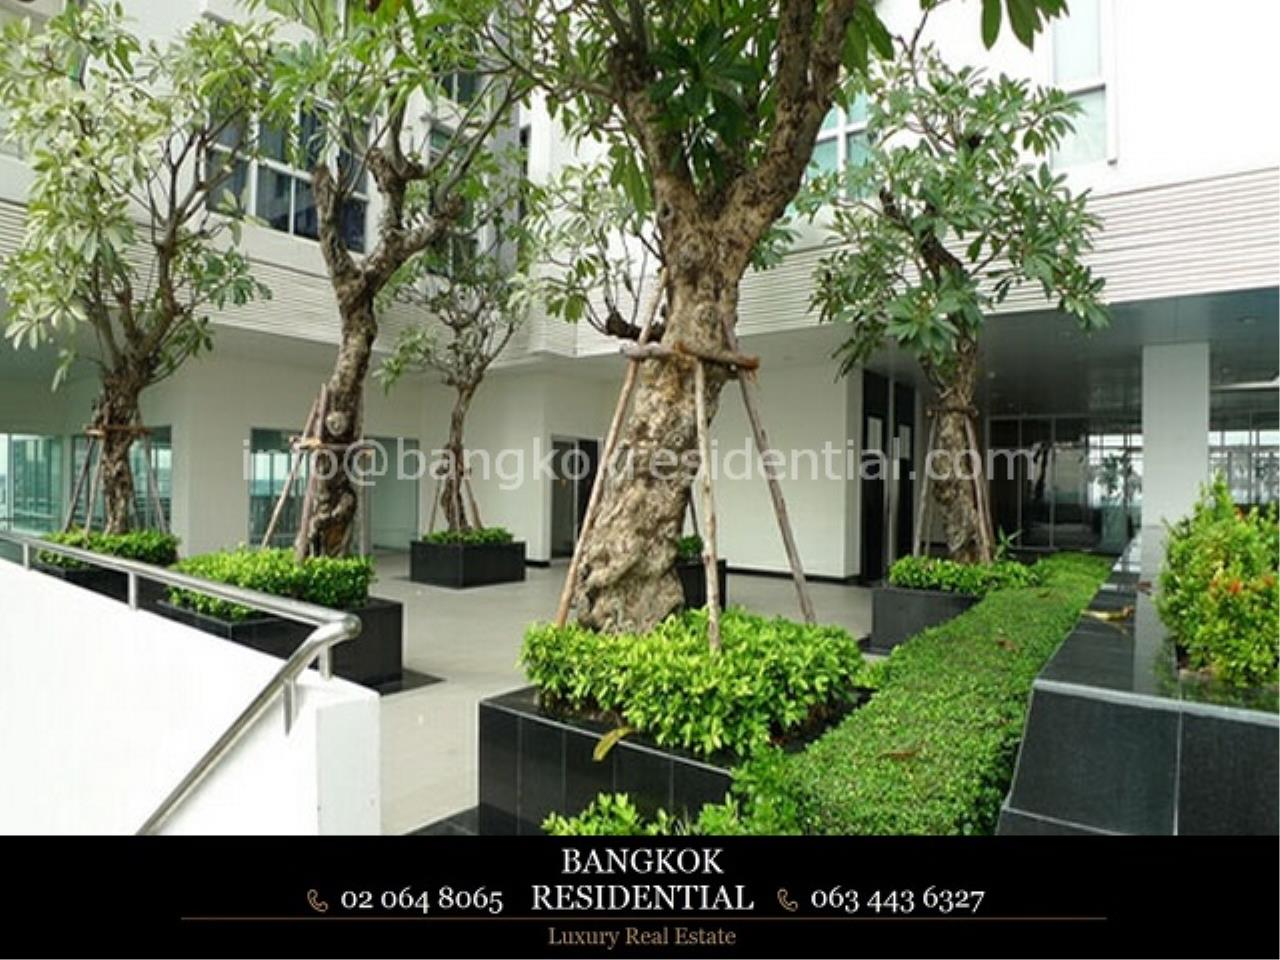 Bangkok Residential Agency's 3BR Nusasiri Grand Condo For Rent (BR4878CD) 7